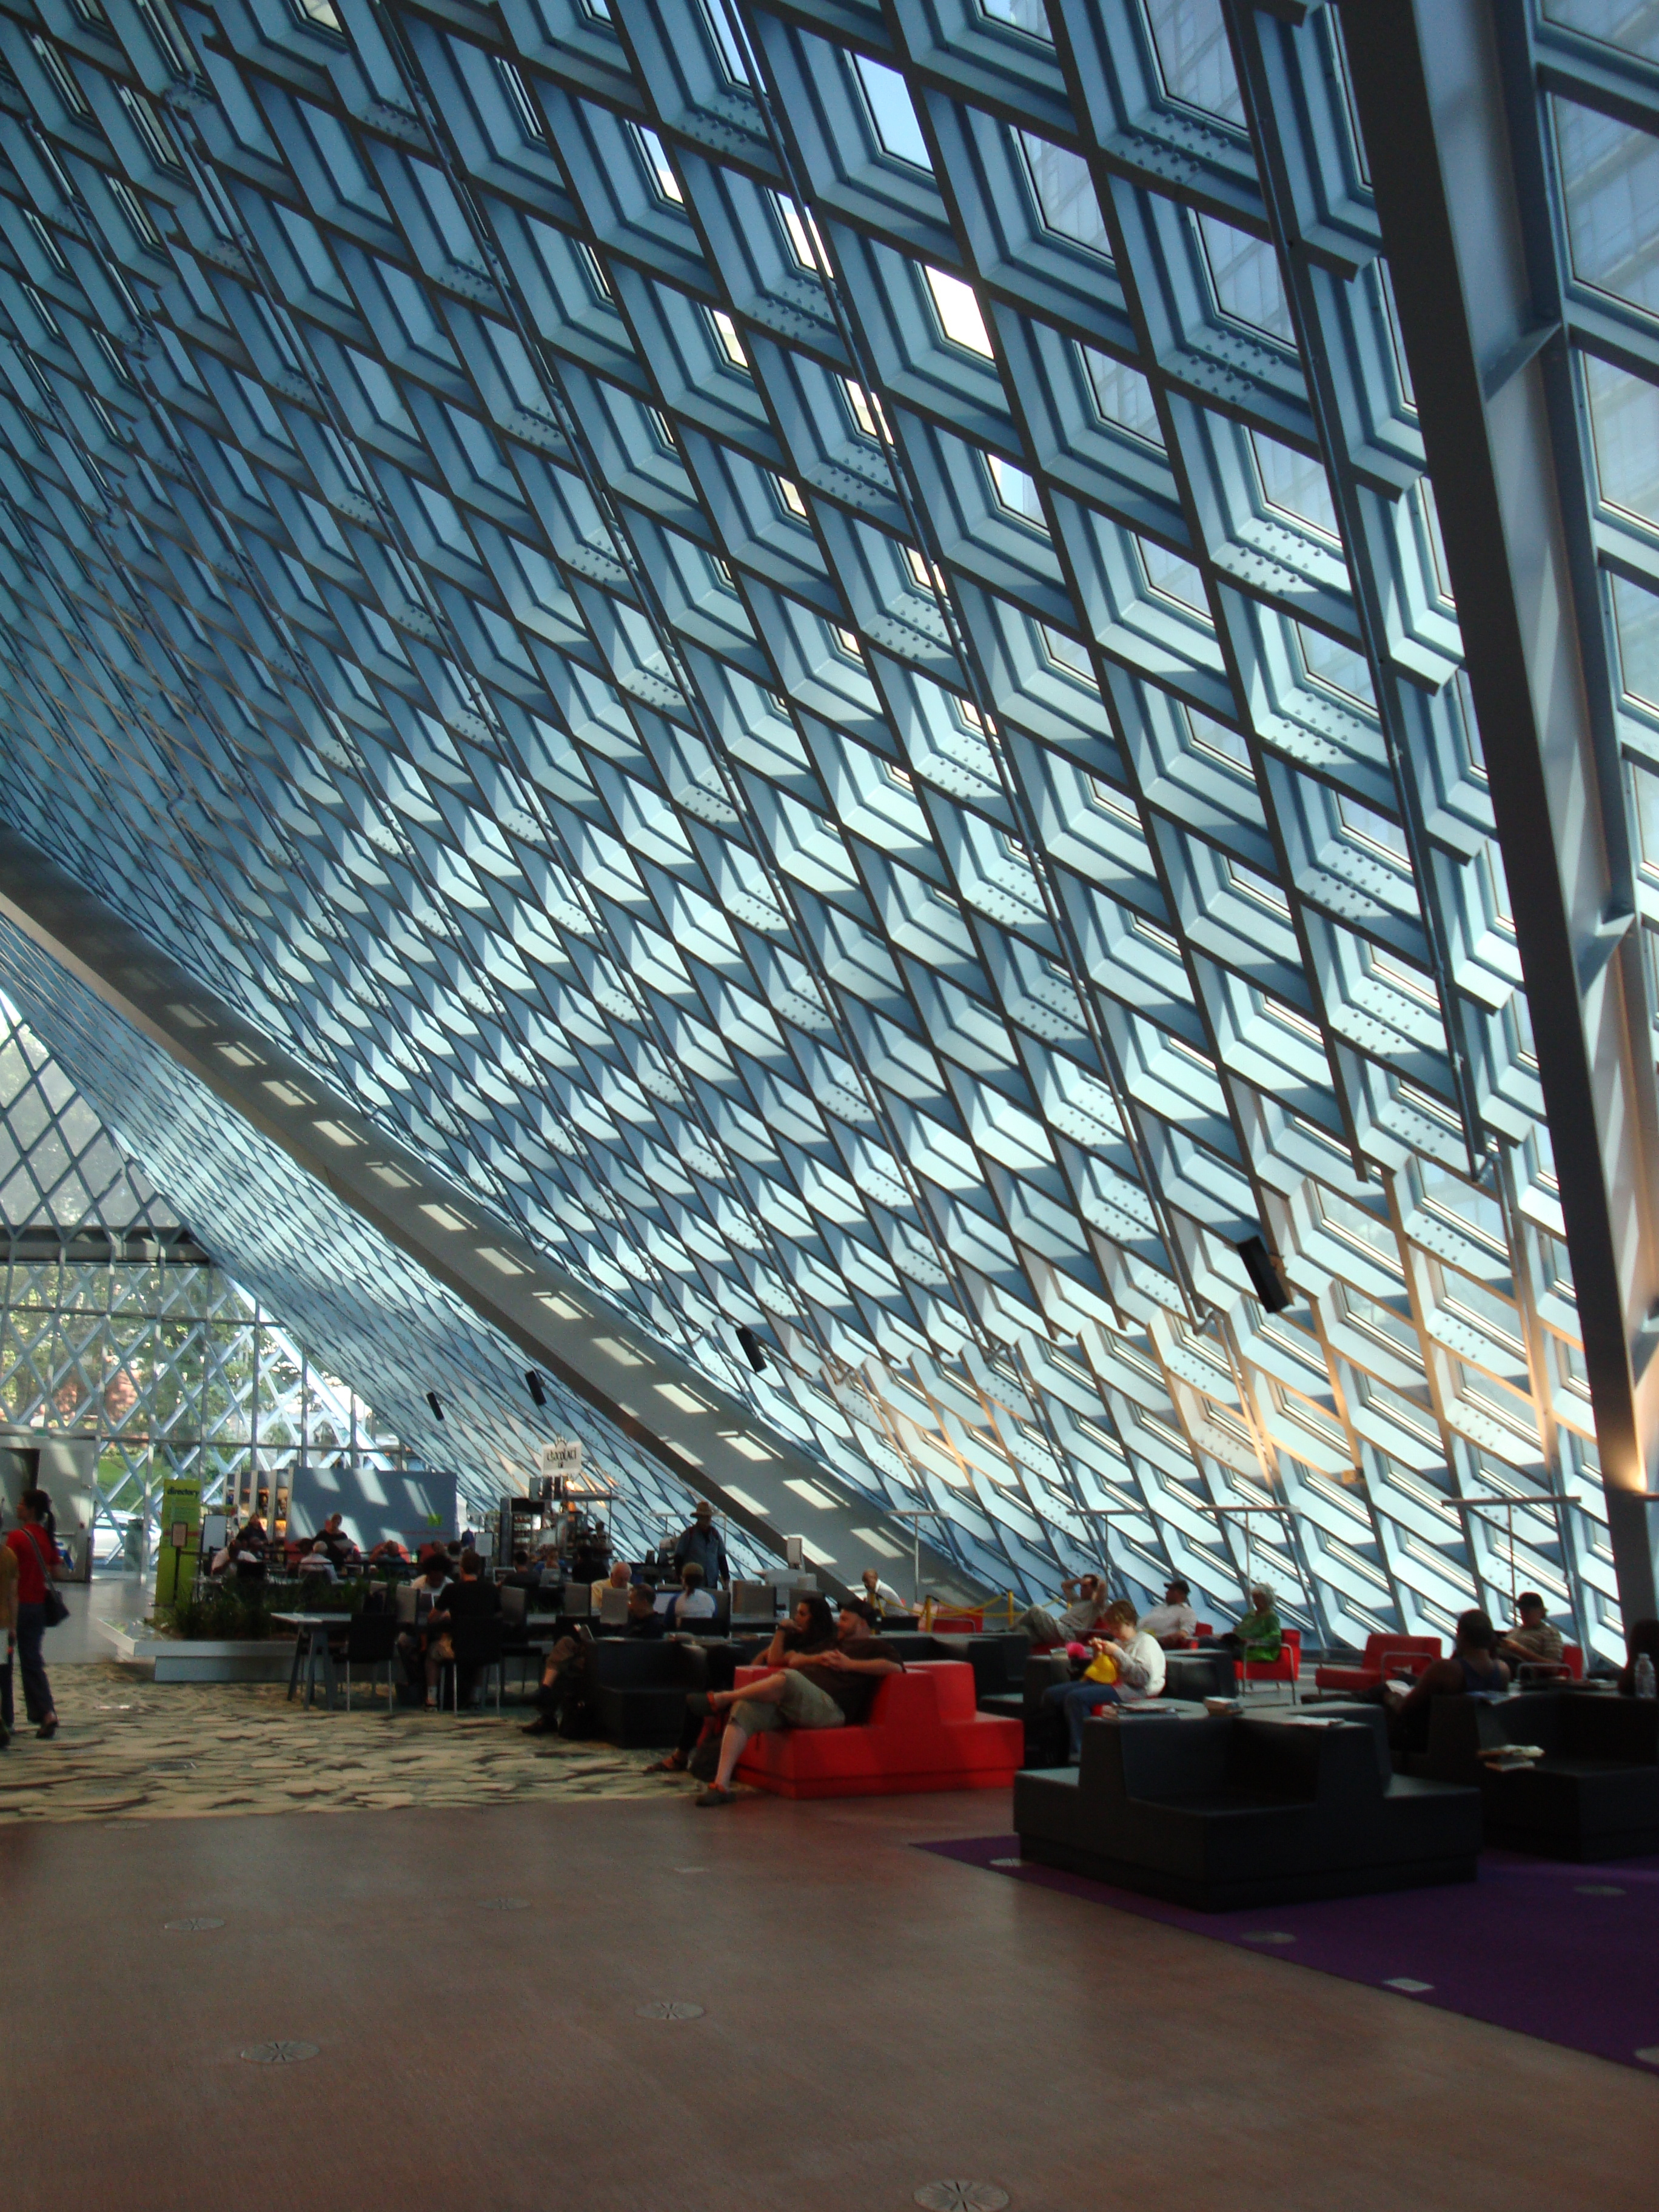 3rd floor of the Seattle Public Library